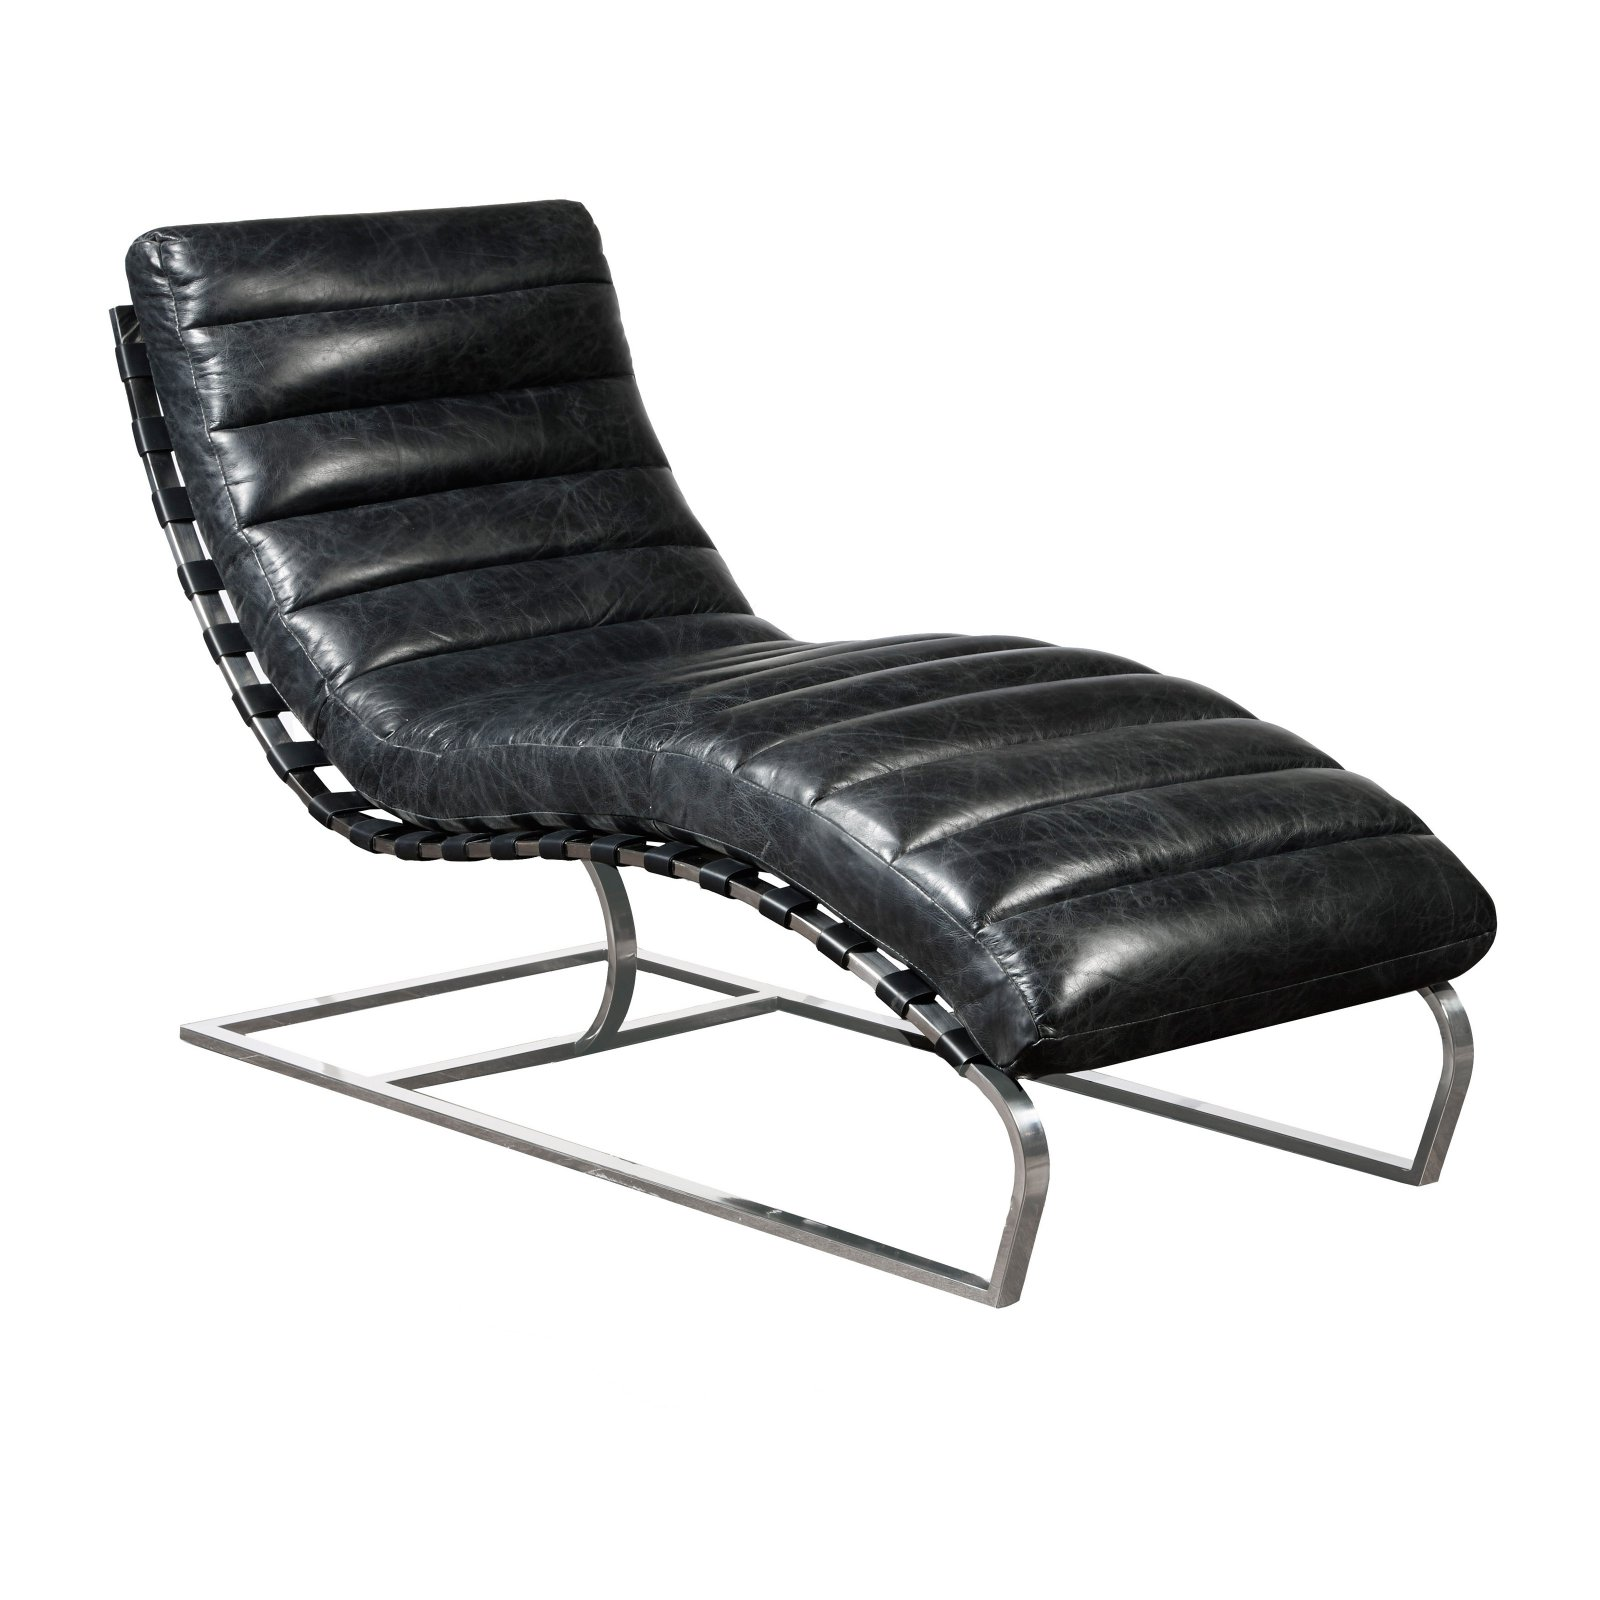 Channeled Black Leather Chaise with Metal  Base